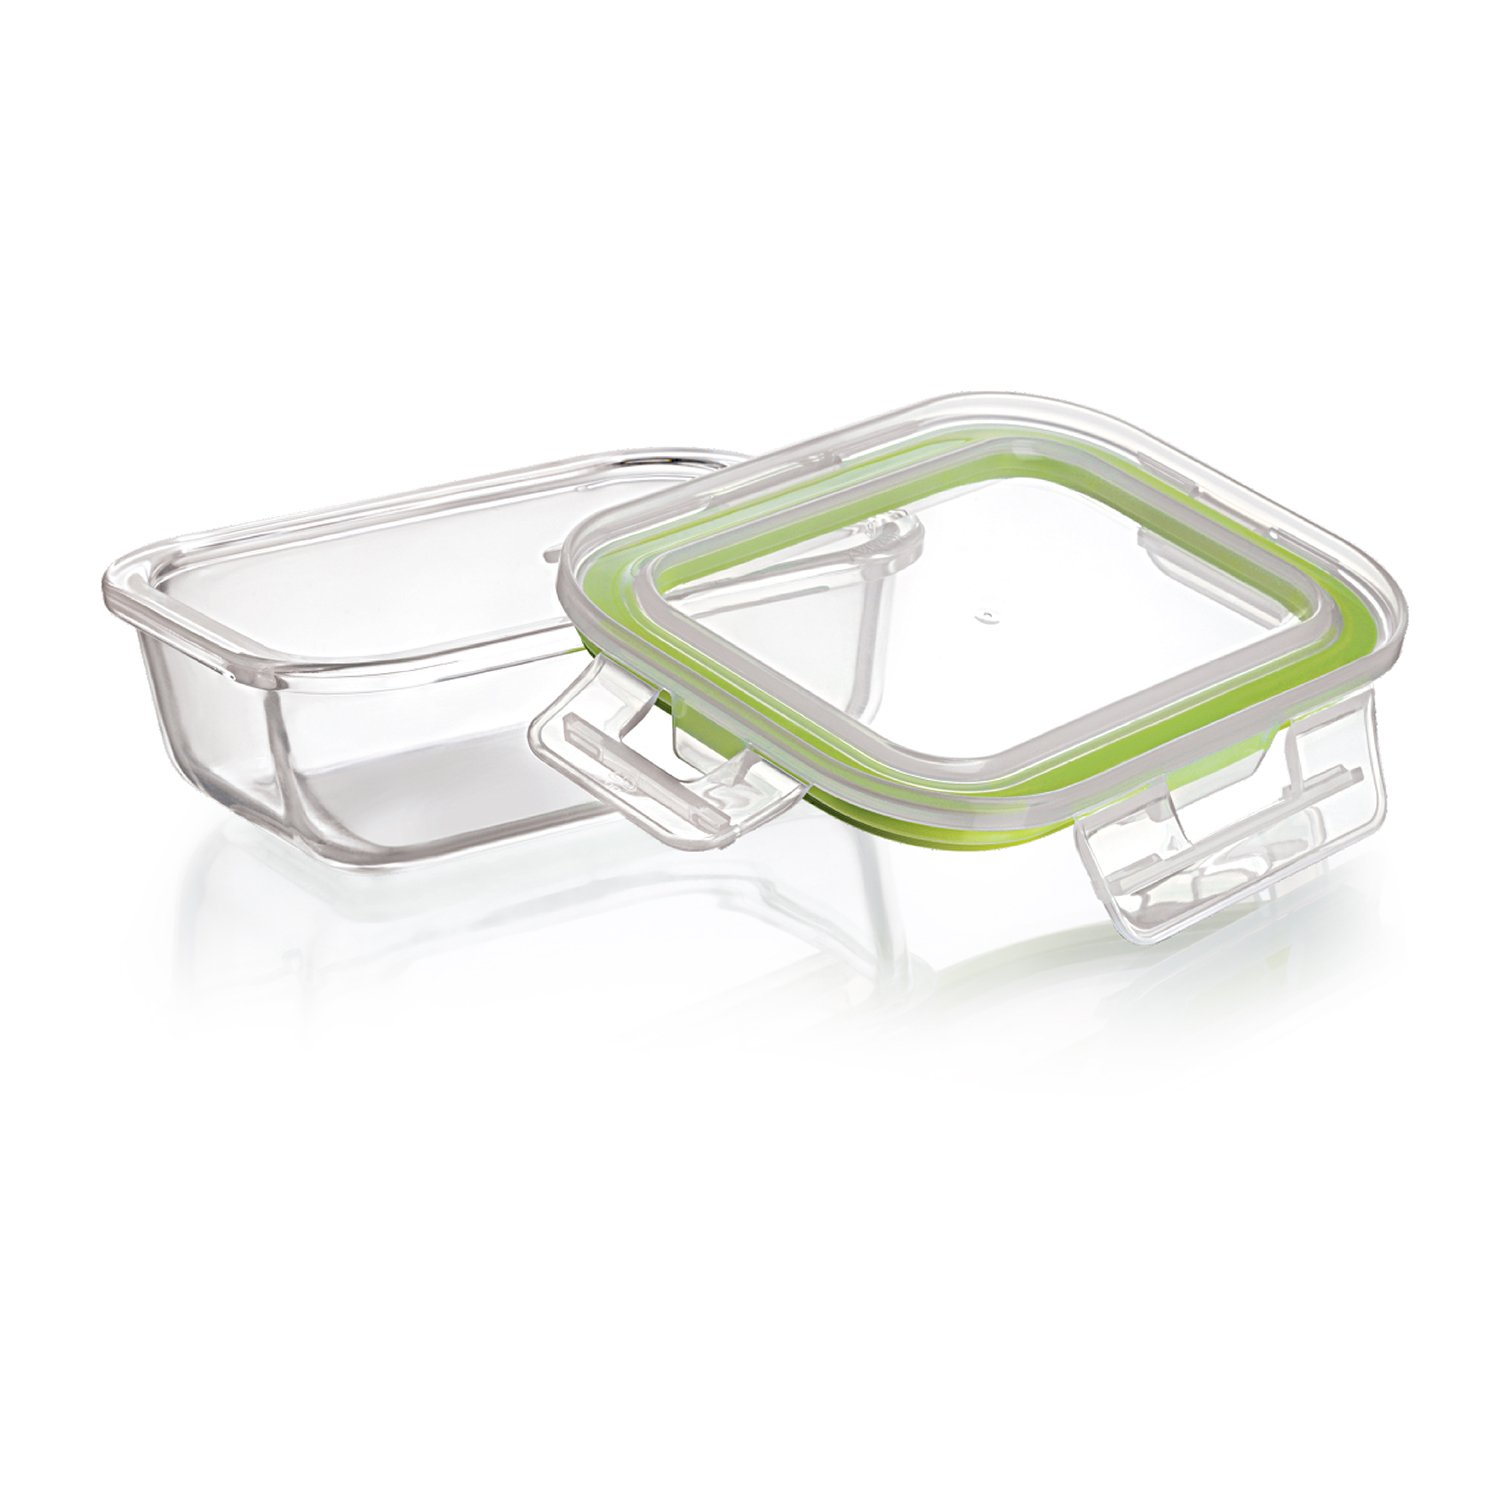 Cello Emili Rectangle Glass Container with Lid, 370ml, 2-Pieces, Clear